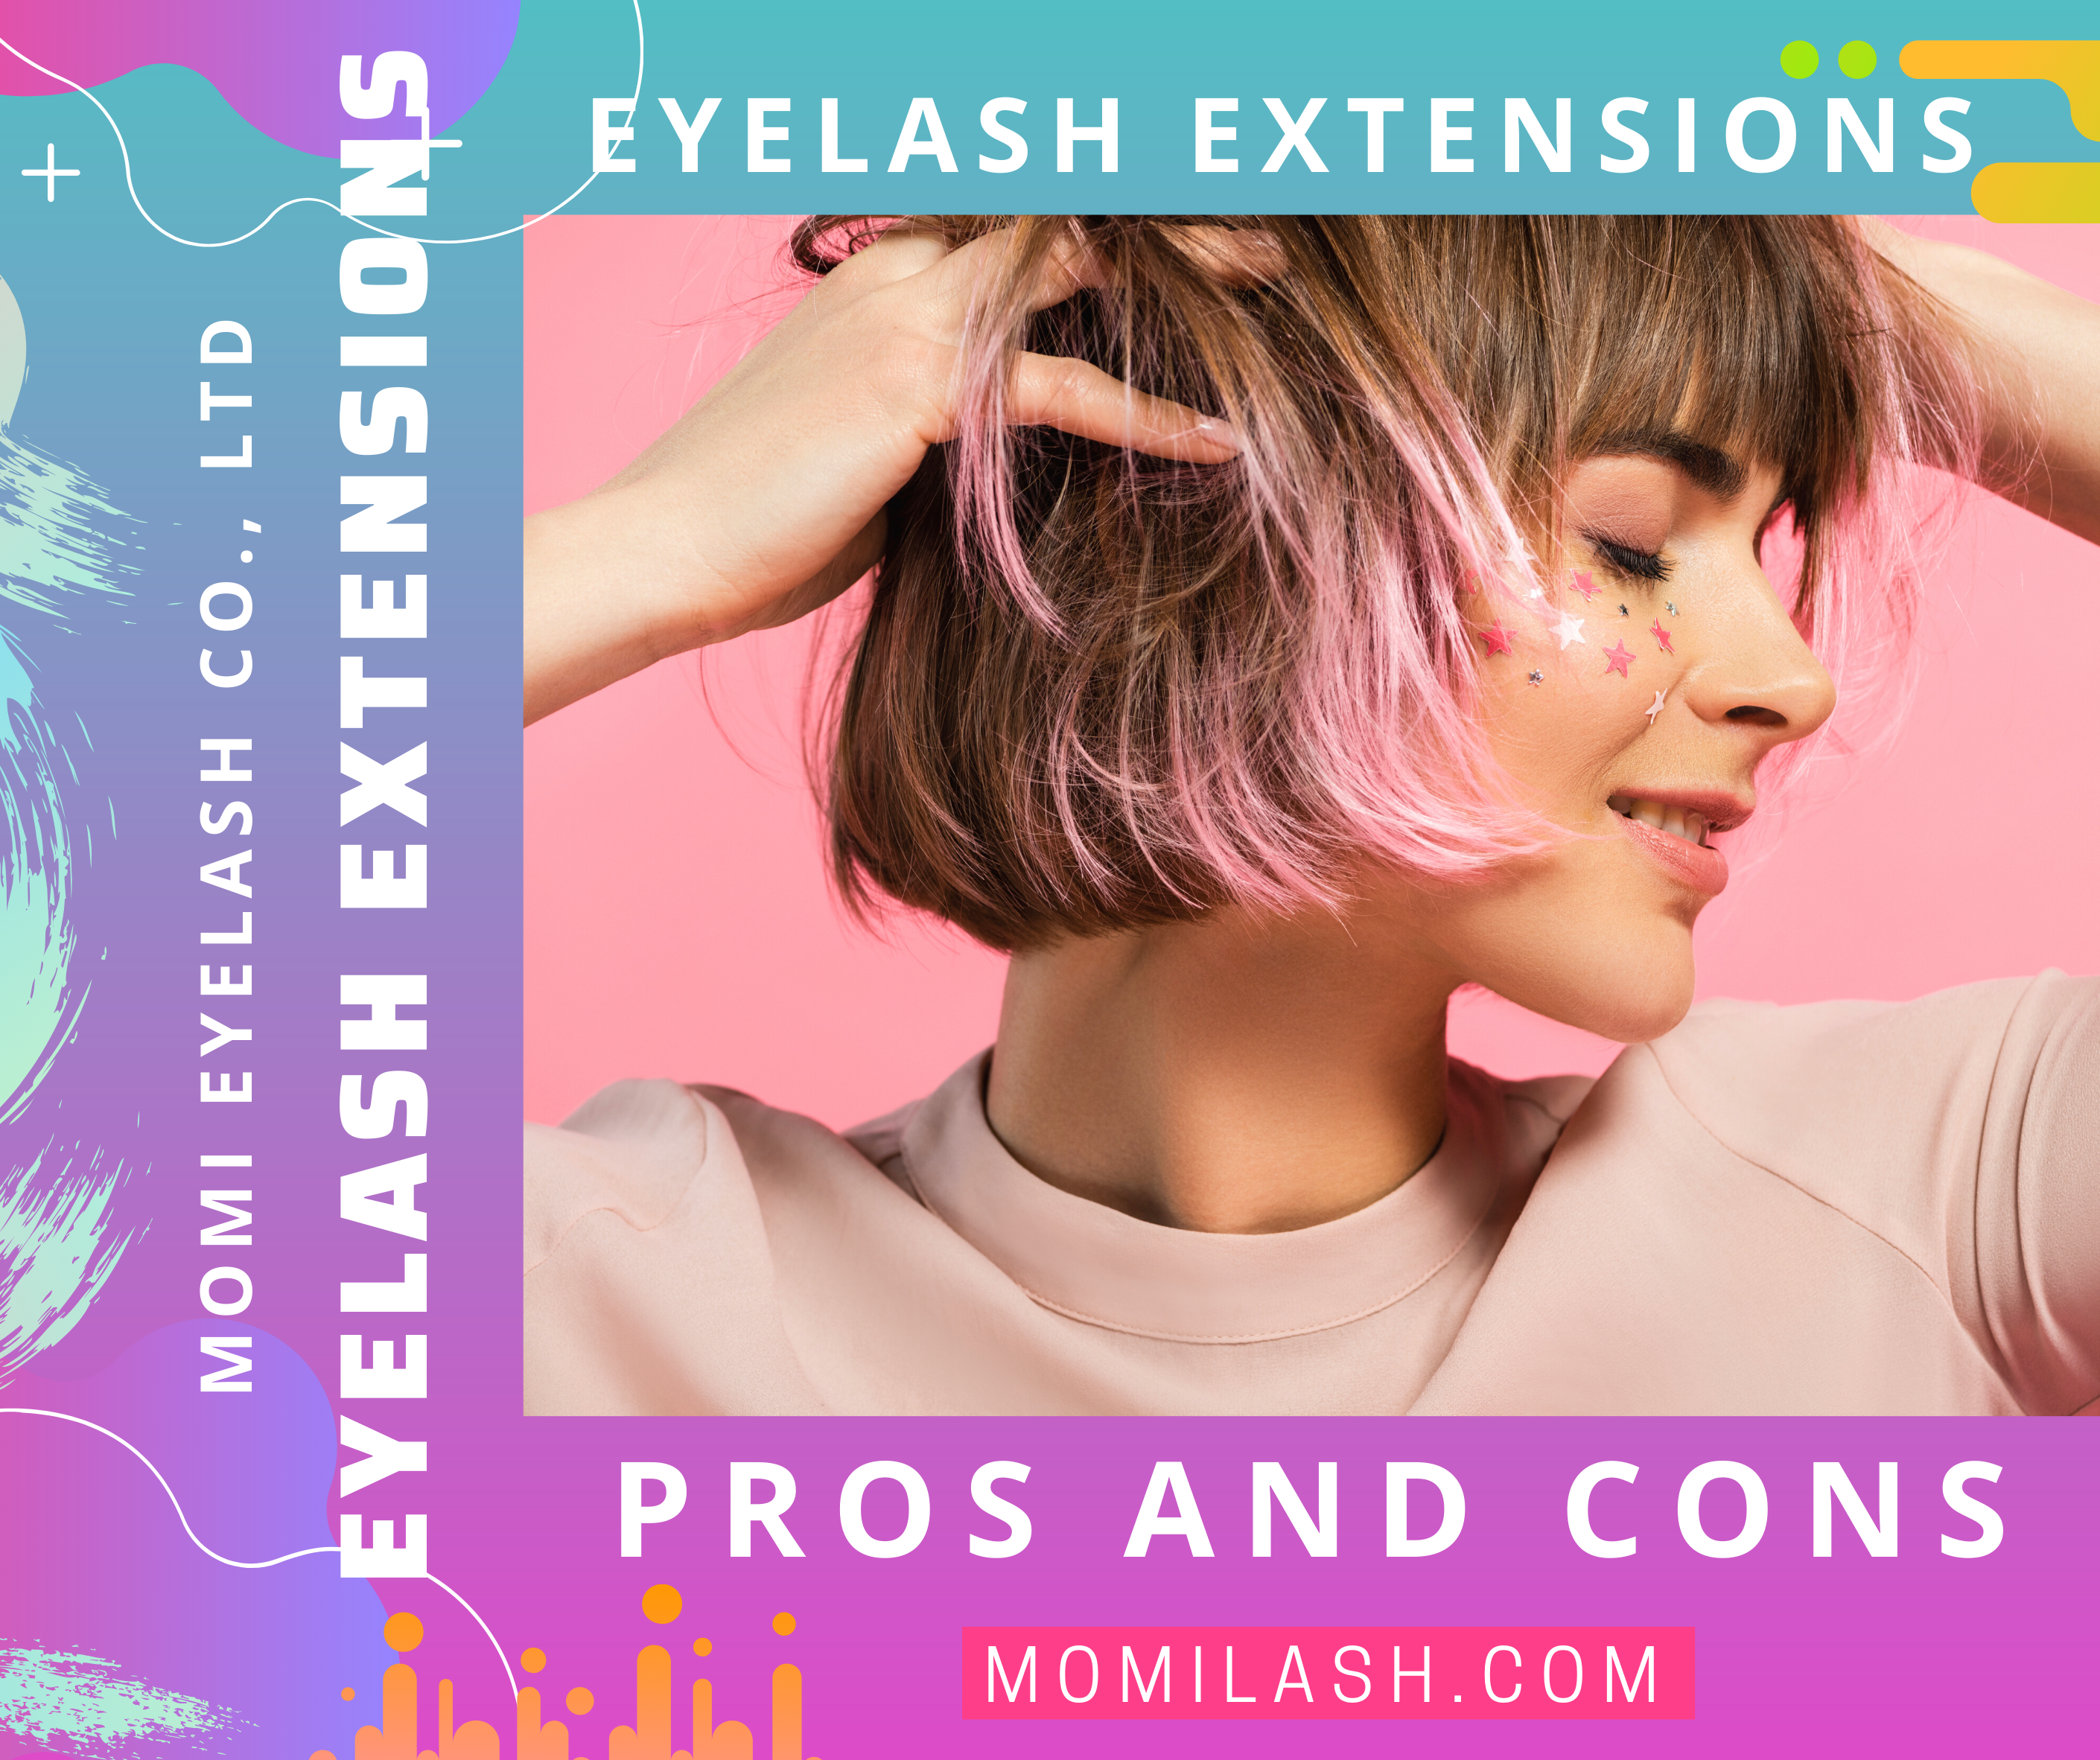 Eyelash Extensions Pros And Cons | The Basics Need To Know ...